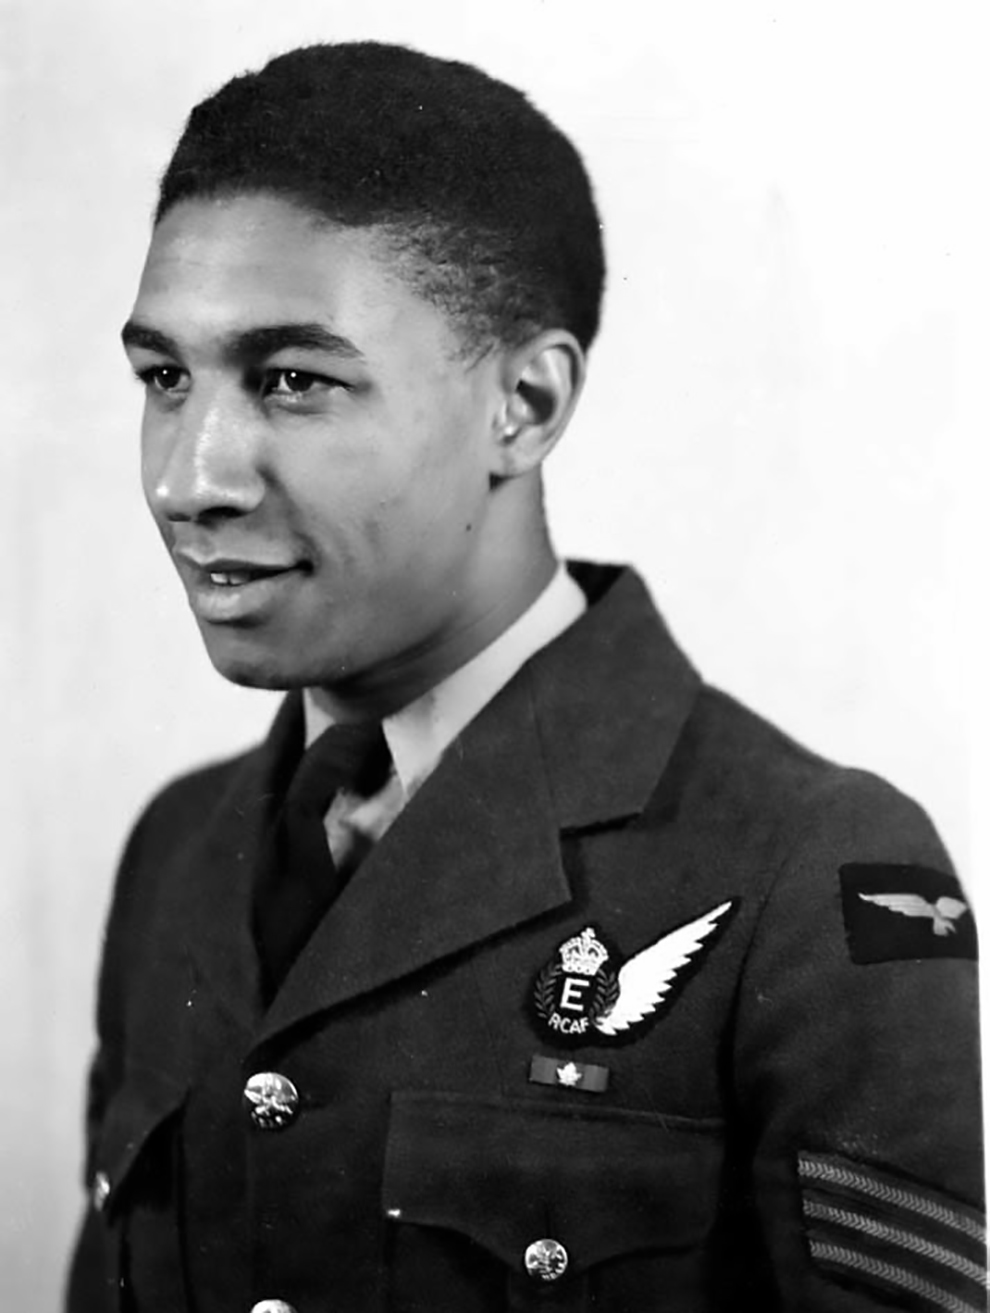 Sergeant Reginald Taylor de la Rosa enlisted in the Royal Canadian Air Force on August 18, 1941, in Toronto as an aero engine mechanic. He was one of the few Black-Canadians who were able to enlist prior to the lifting of the colour barrier. He later retrained as a flight engineer. PHOTO: RCAF, courtesy Major Mathias Joost